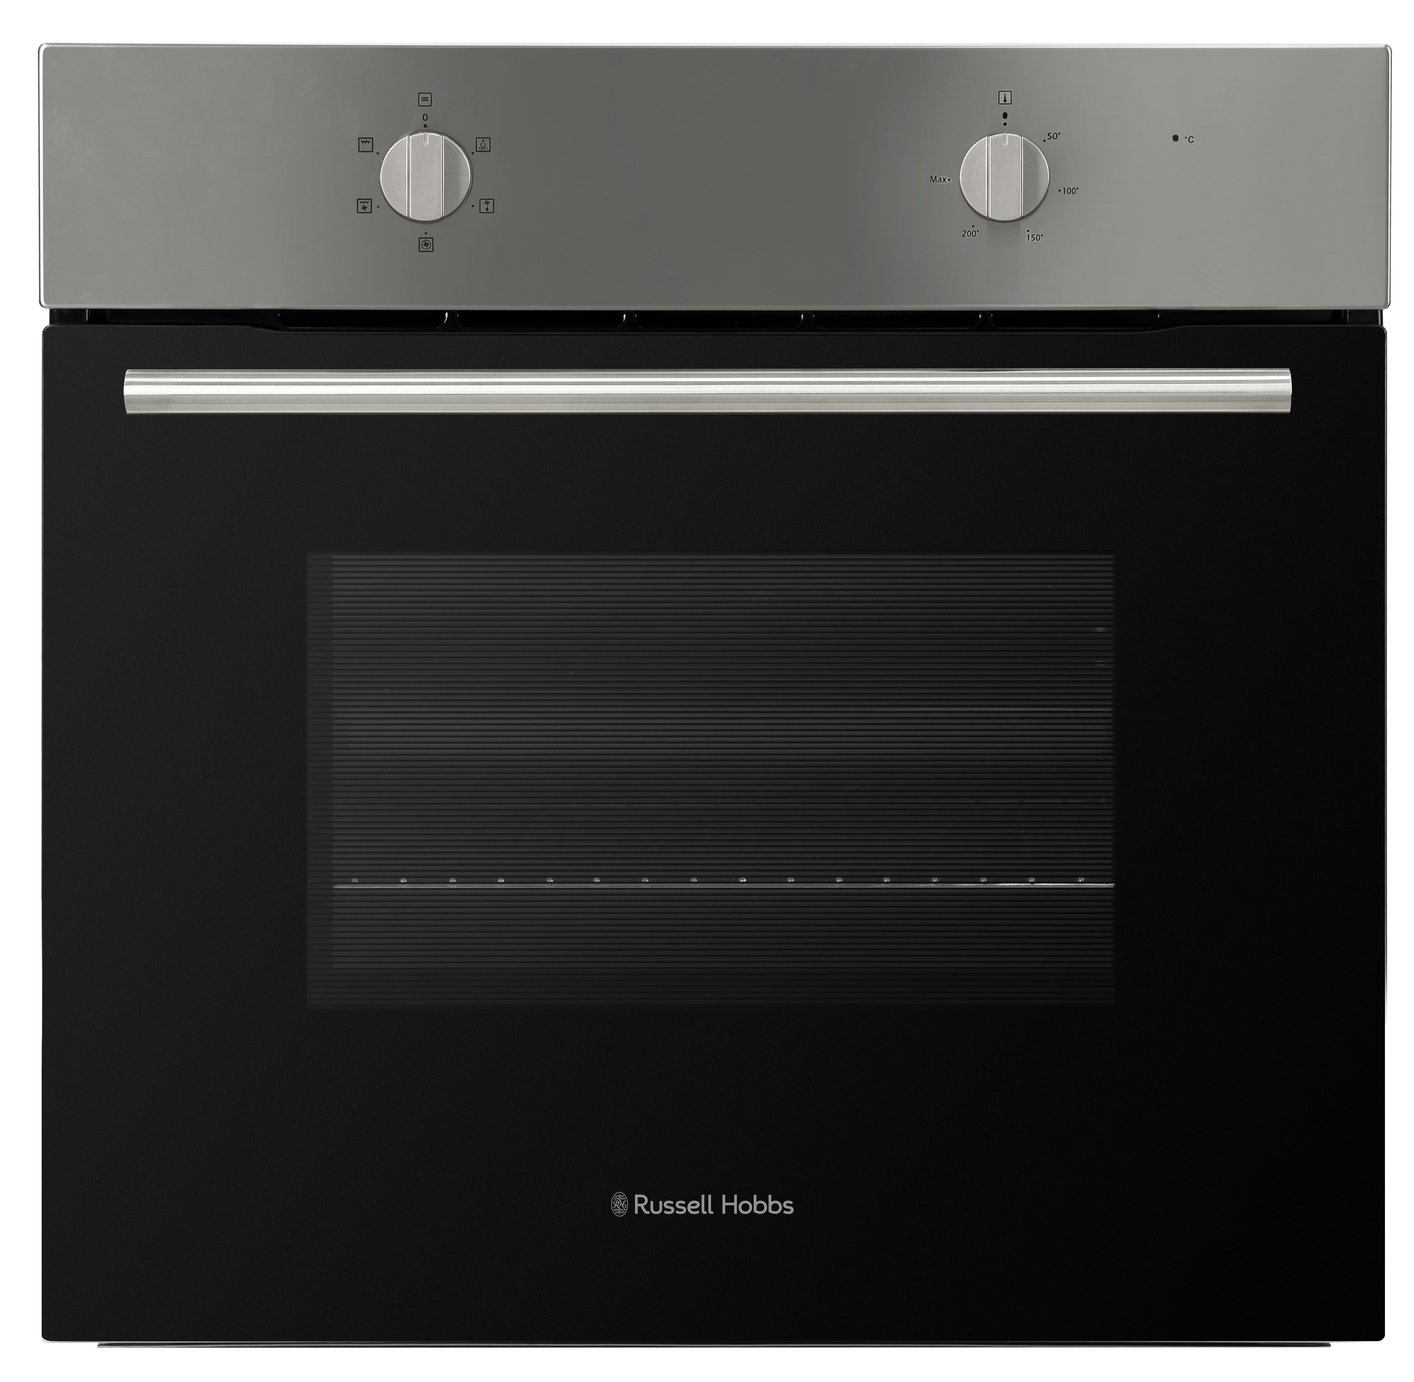 Russell Hobbs RHFEO6502SS Built In Electric Oven - S/Steel from russell hobbs